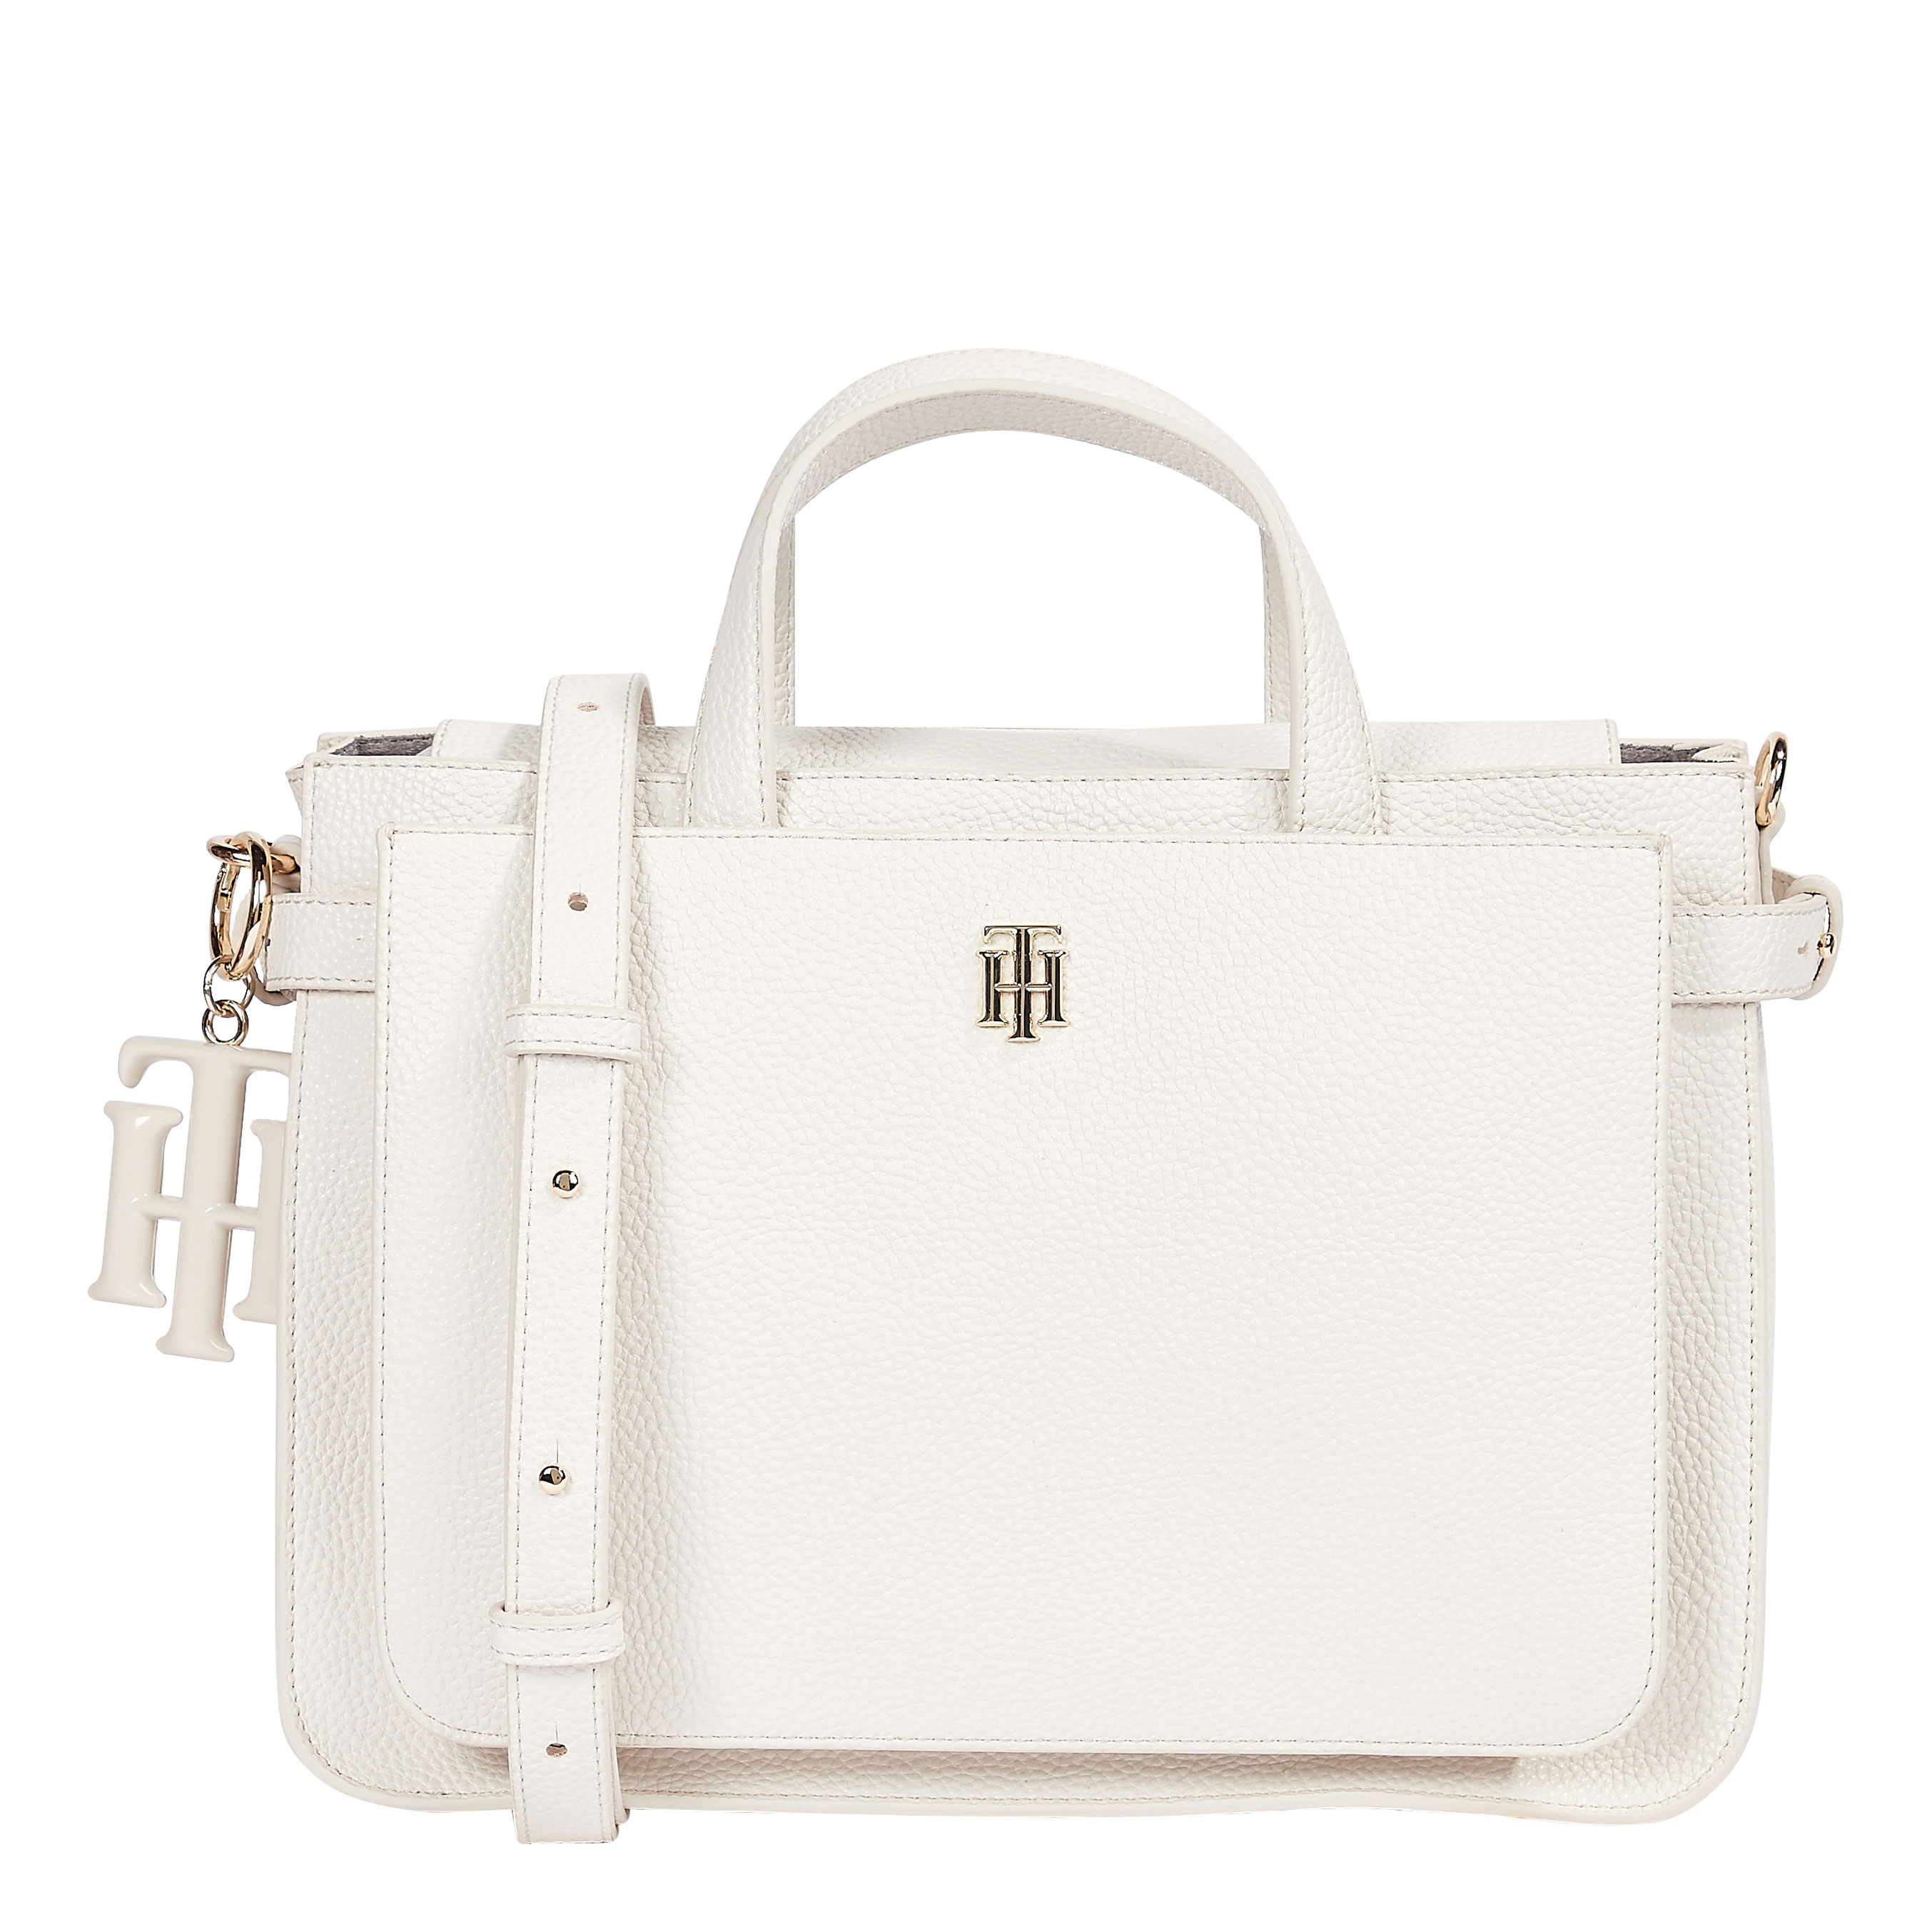 TOMMY HILFIGER Marroquinería Satchel White Dove AW0AW09835-AF2